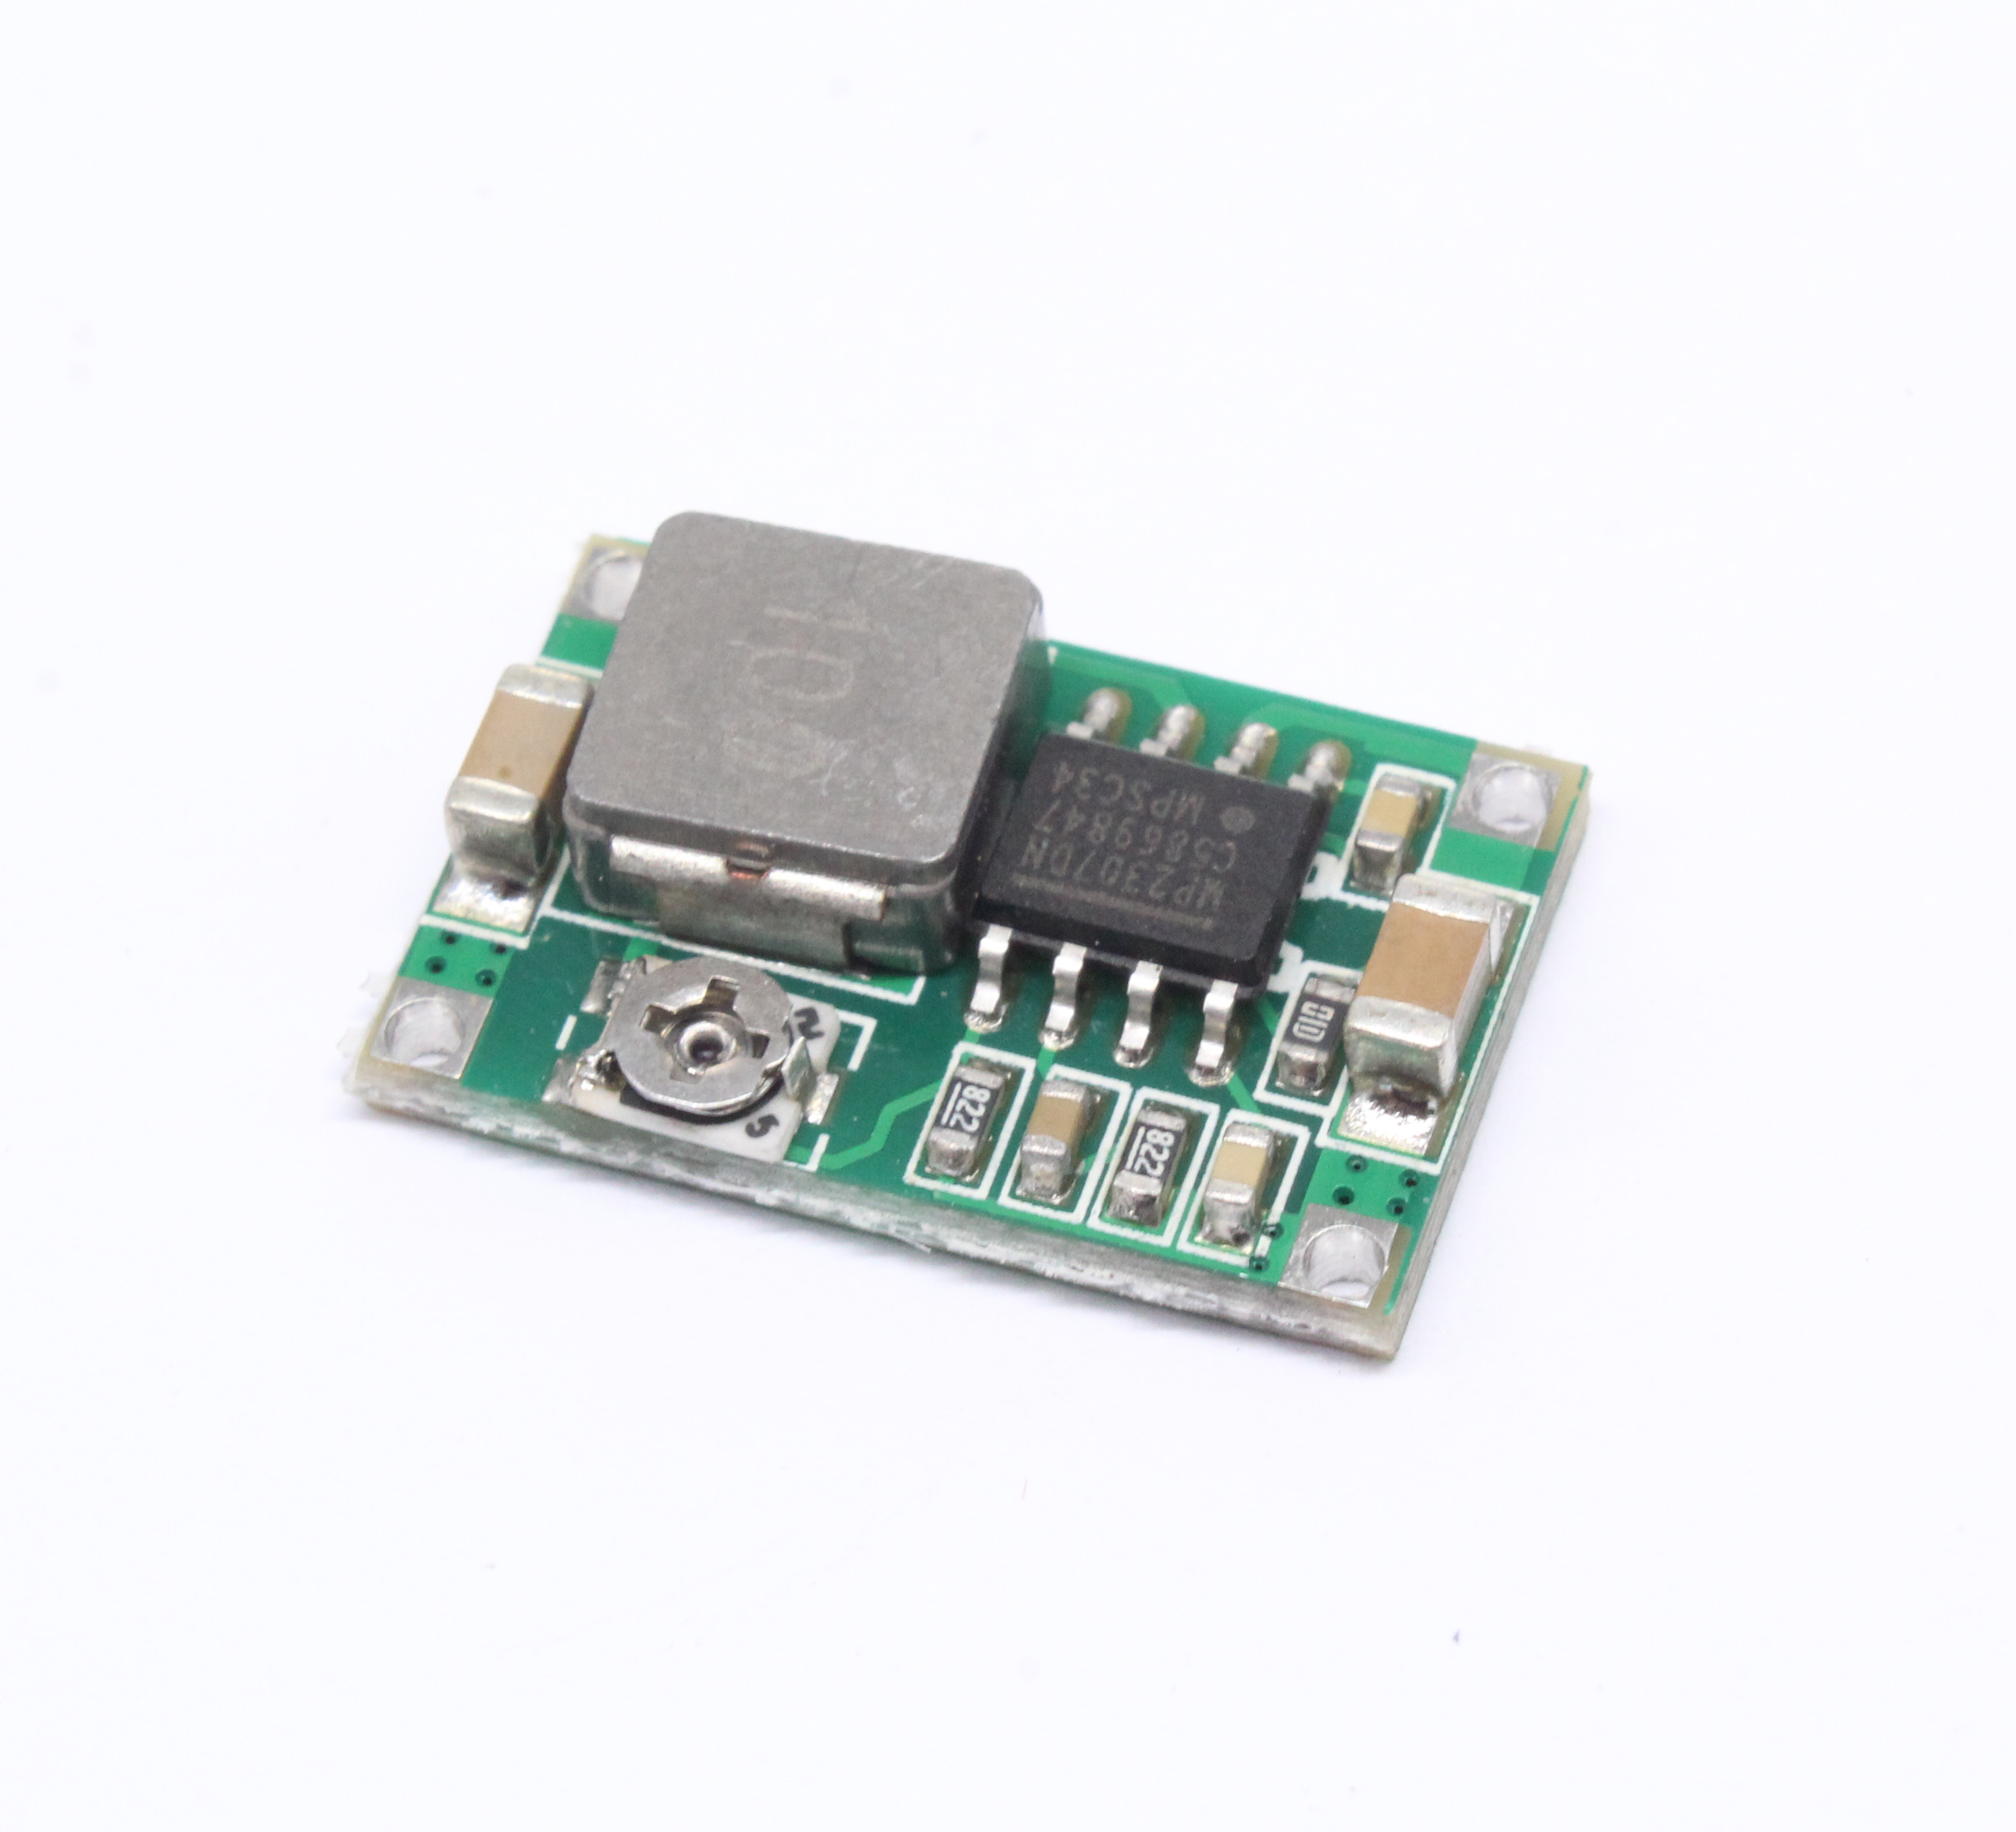 1PCS Mini-360 Model Step-down Power Module DC DC Low Power Module Vehicle Power Supply - Better Than LM2596